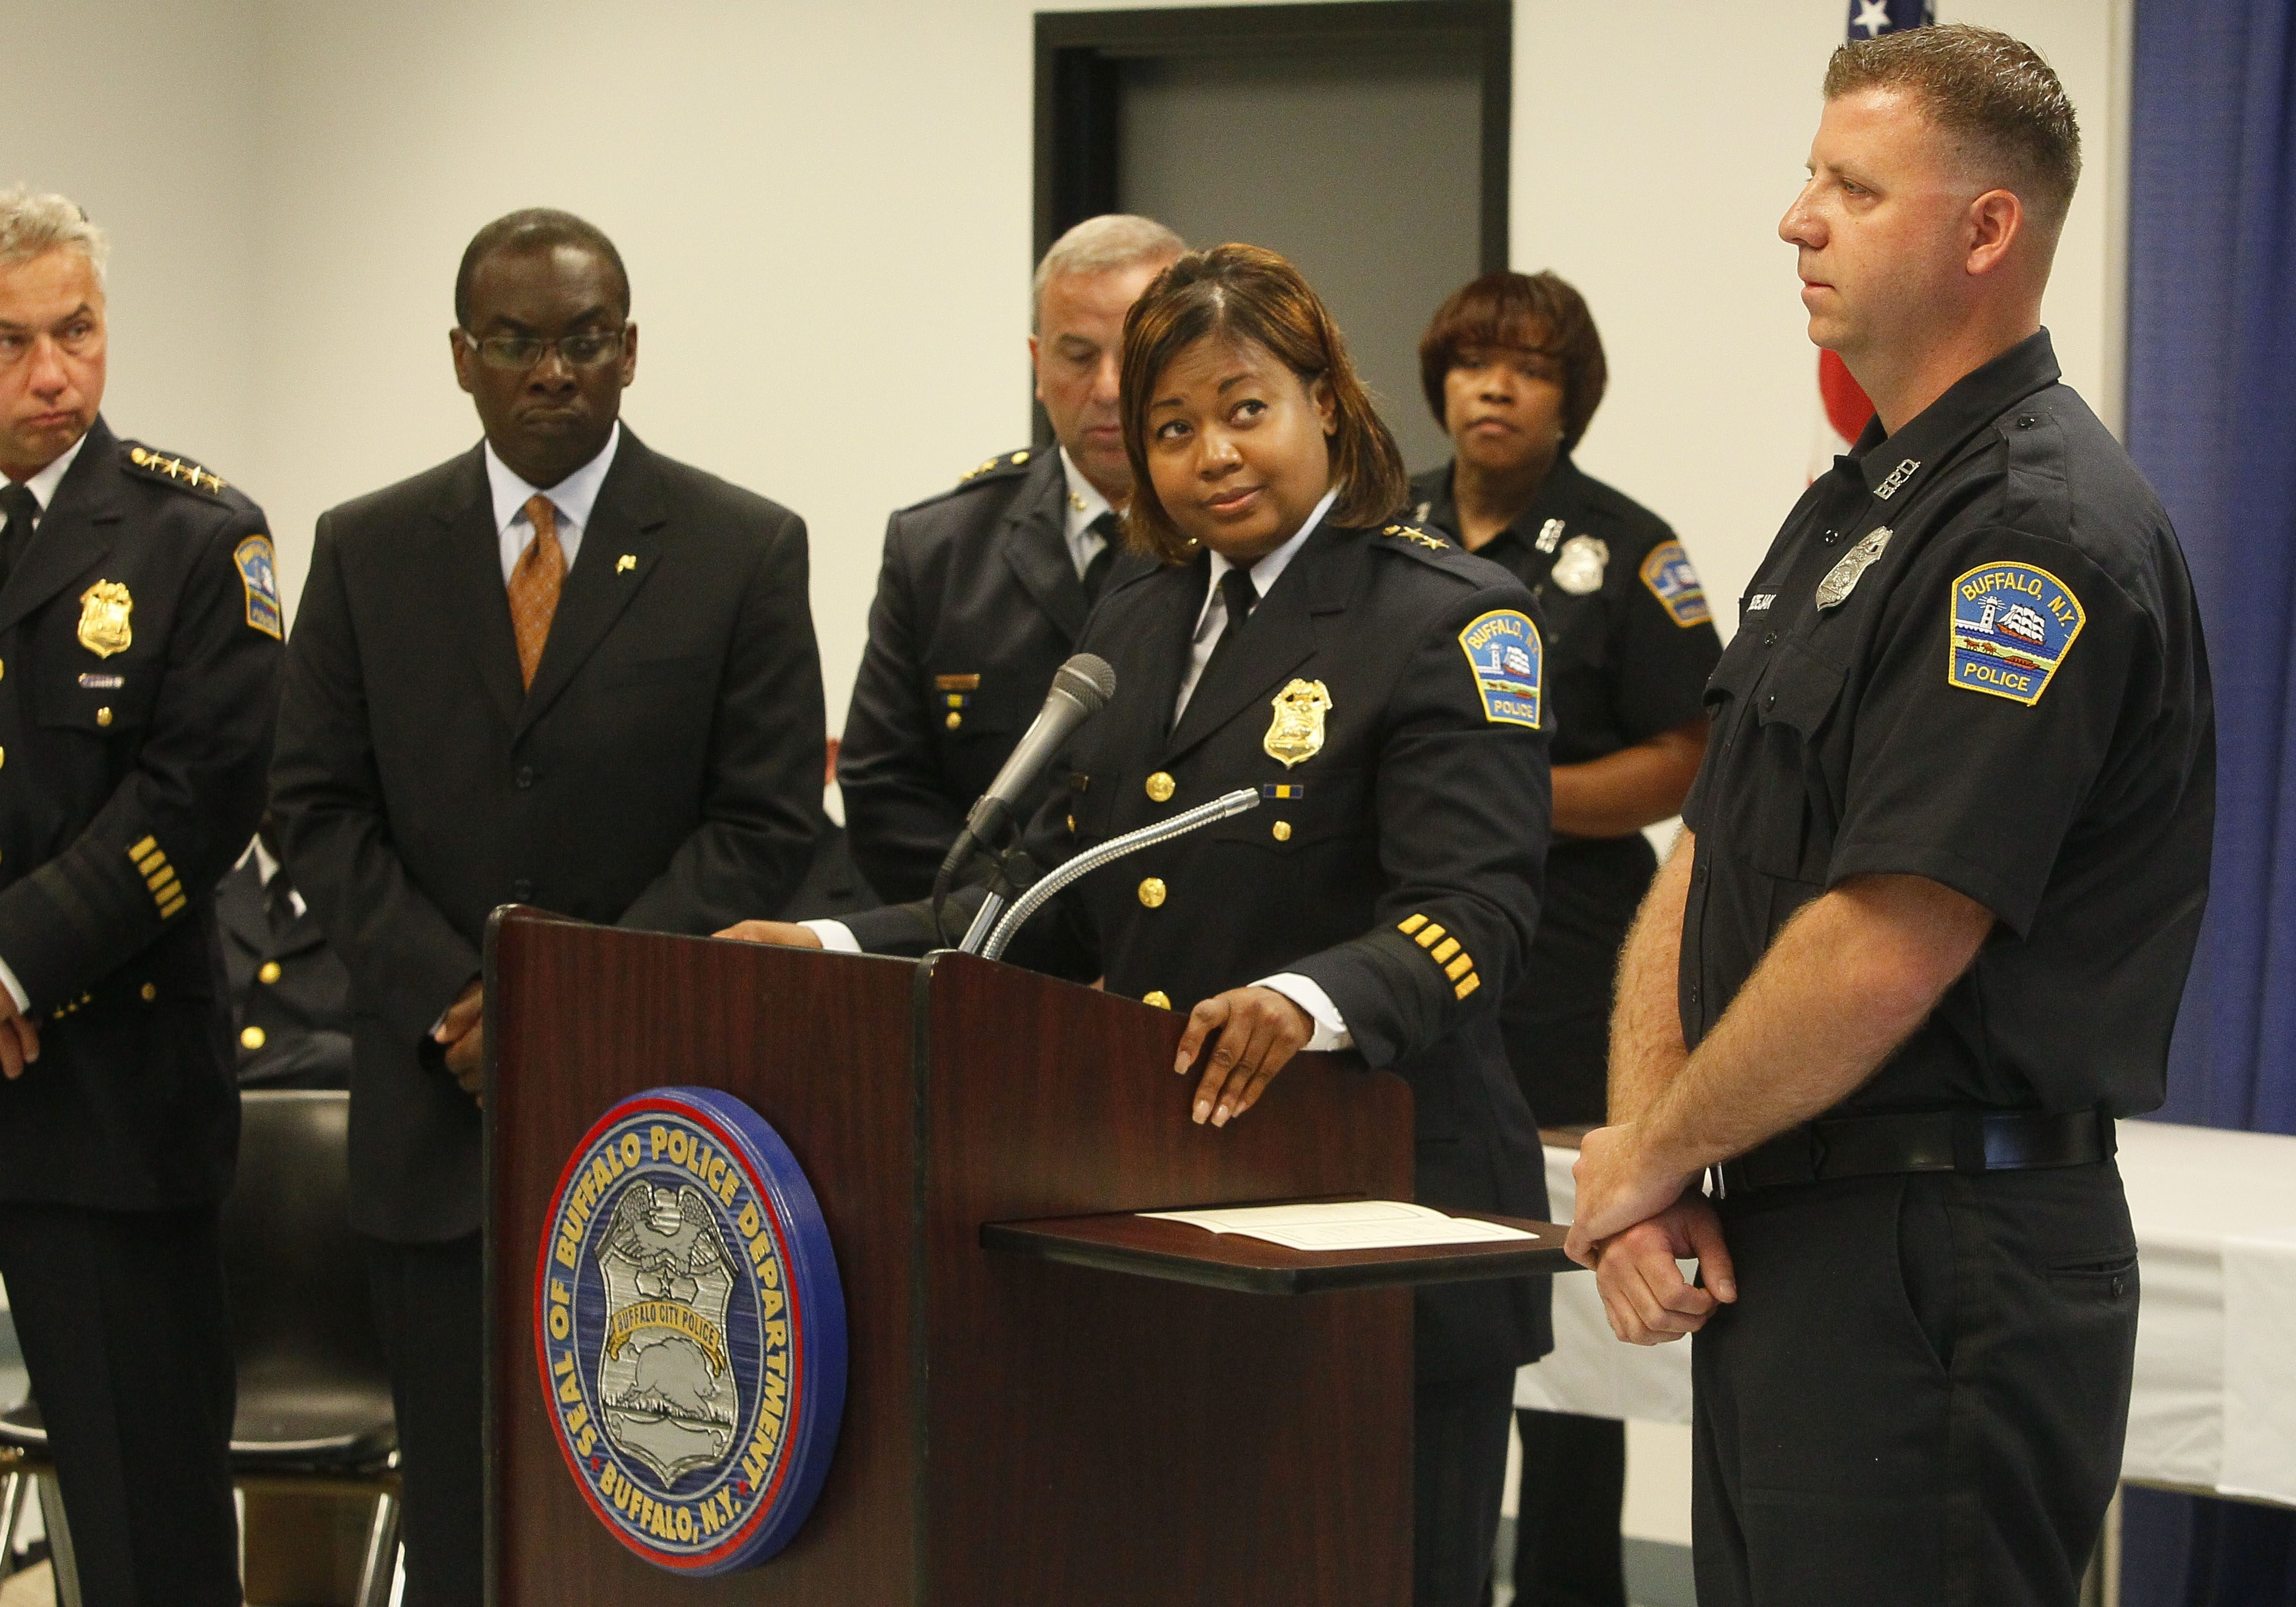 Northeast District Chief Kimberly L. Beaty appears in a campaign advertisement for Mayor Byron Brown.